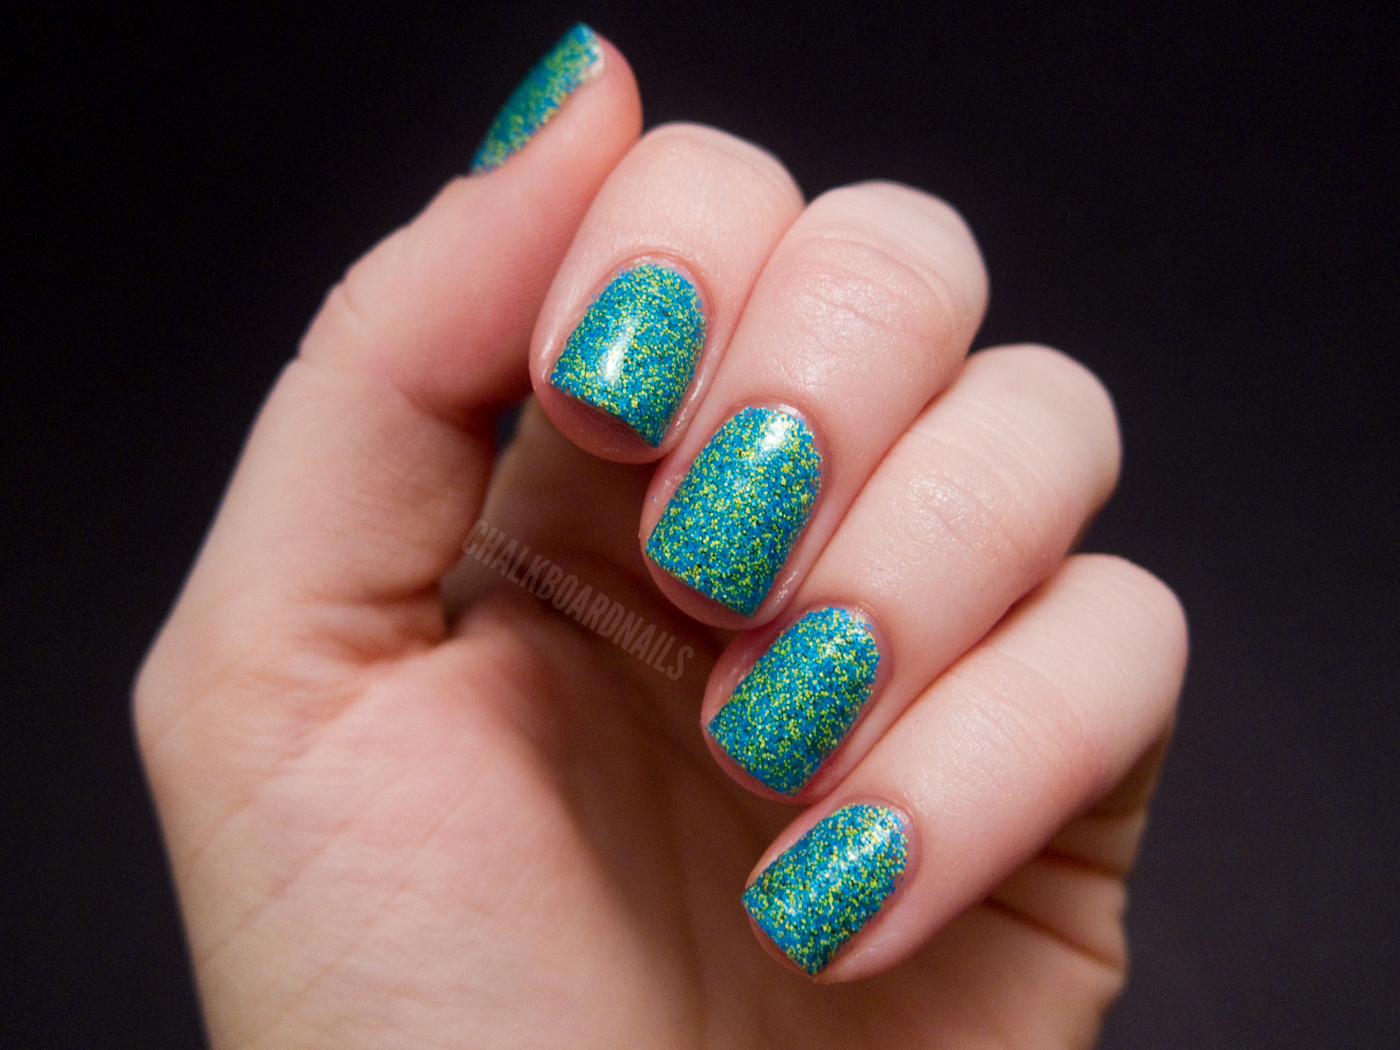 Floam By Nail Venturous Lacquer